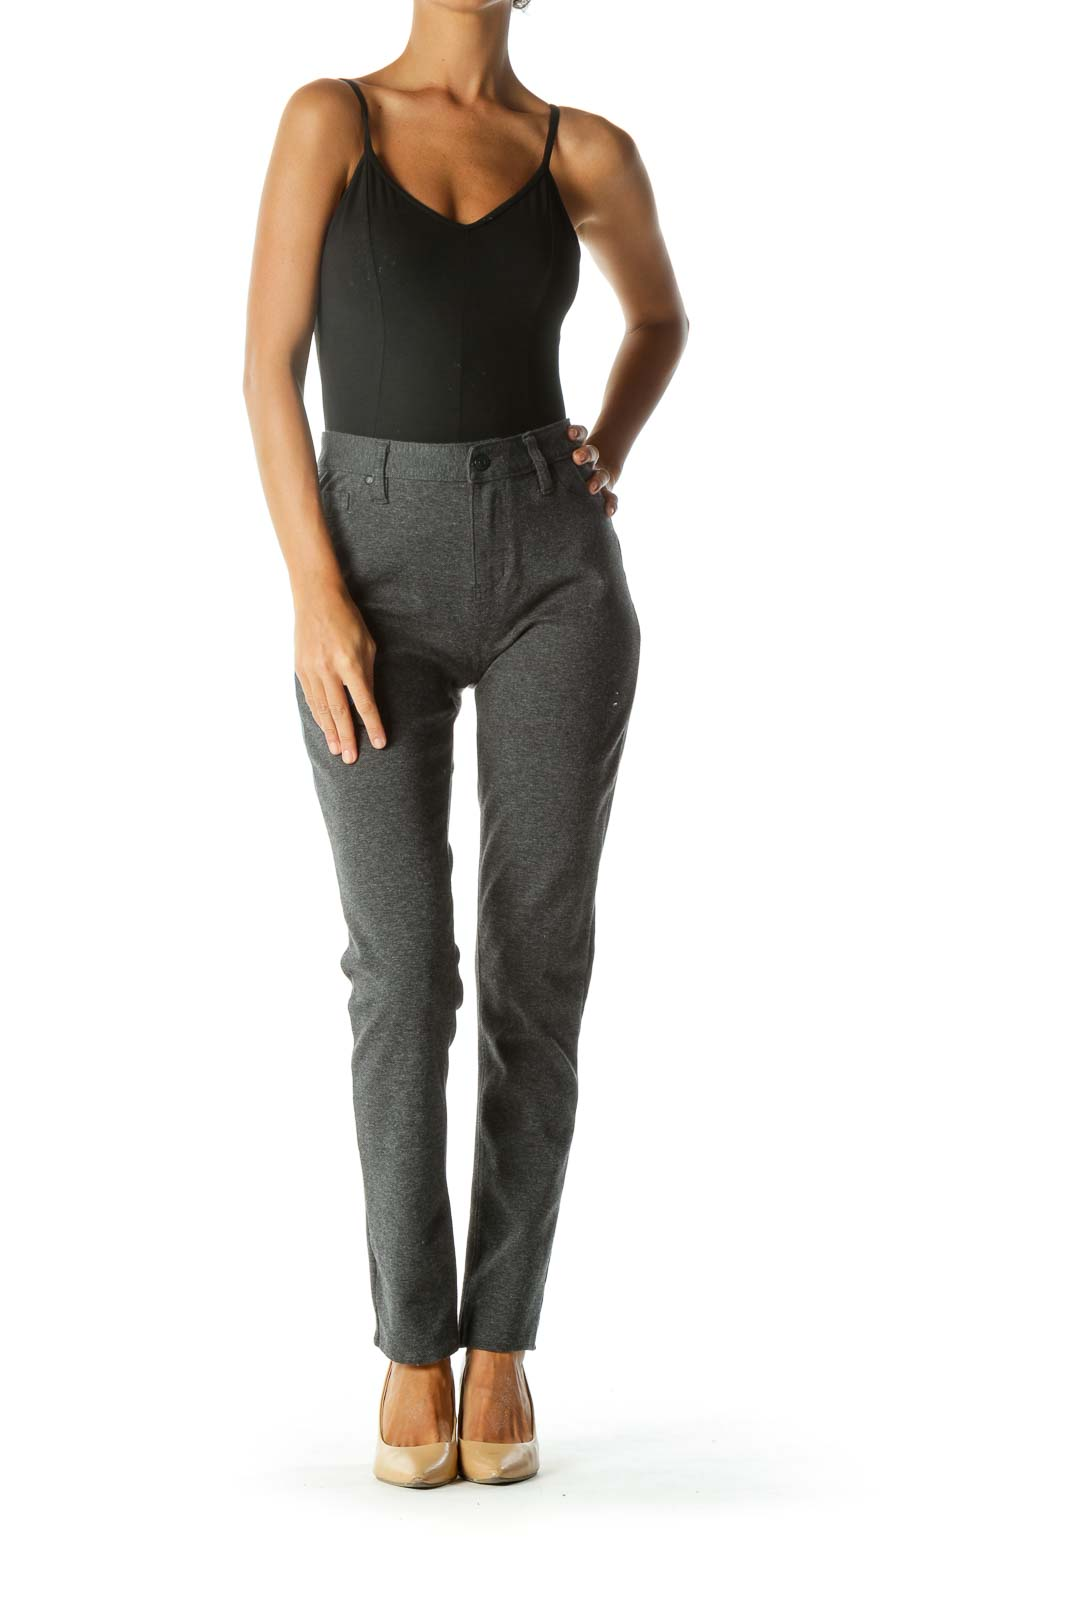 Gray Knit Faux-Pockets Slim Knit Pants